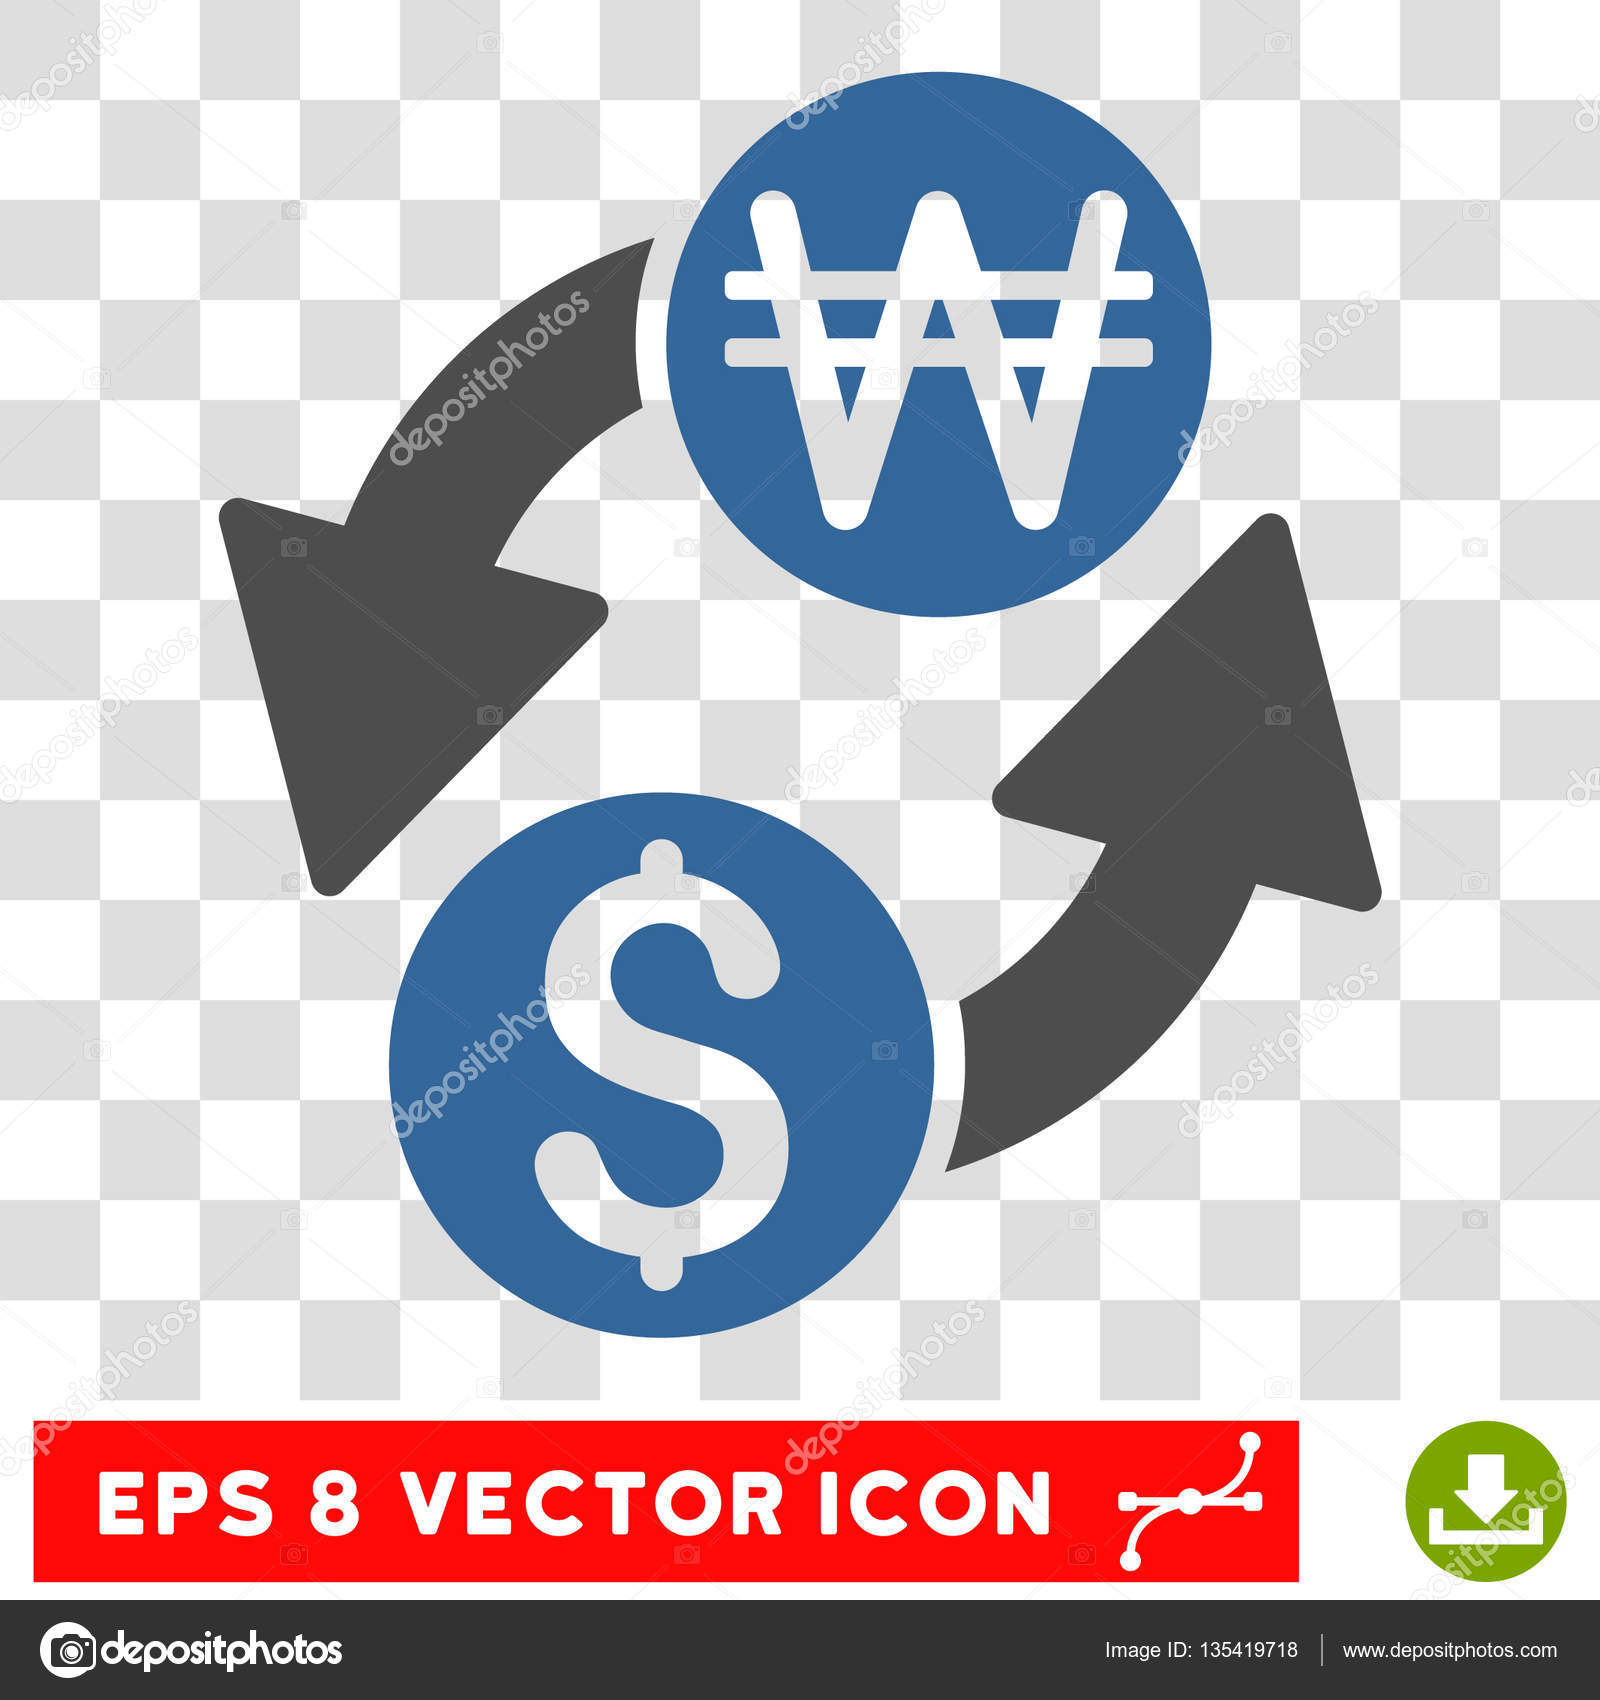 Dollar korean won exchange vector icon stock vector ahasoft dollar korean won exchange vector icon image style is a flat cobalt and gray iconic symbol vector by ahasoft buycottarizona